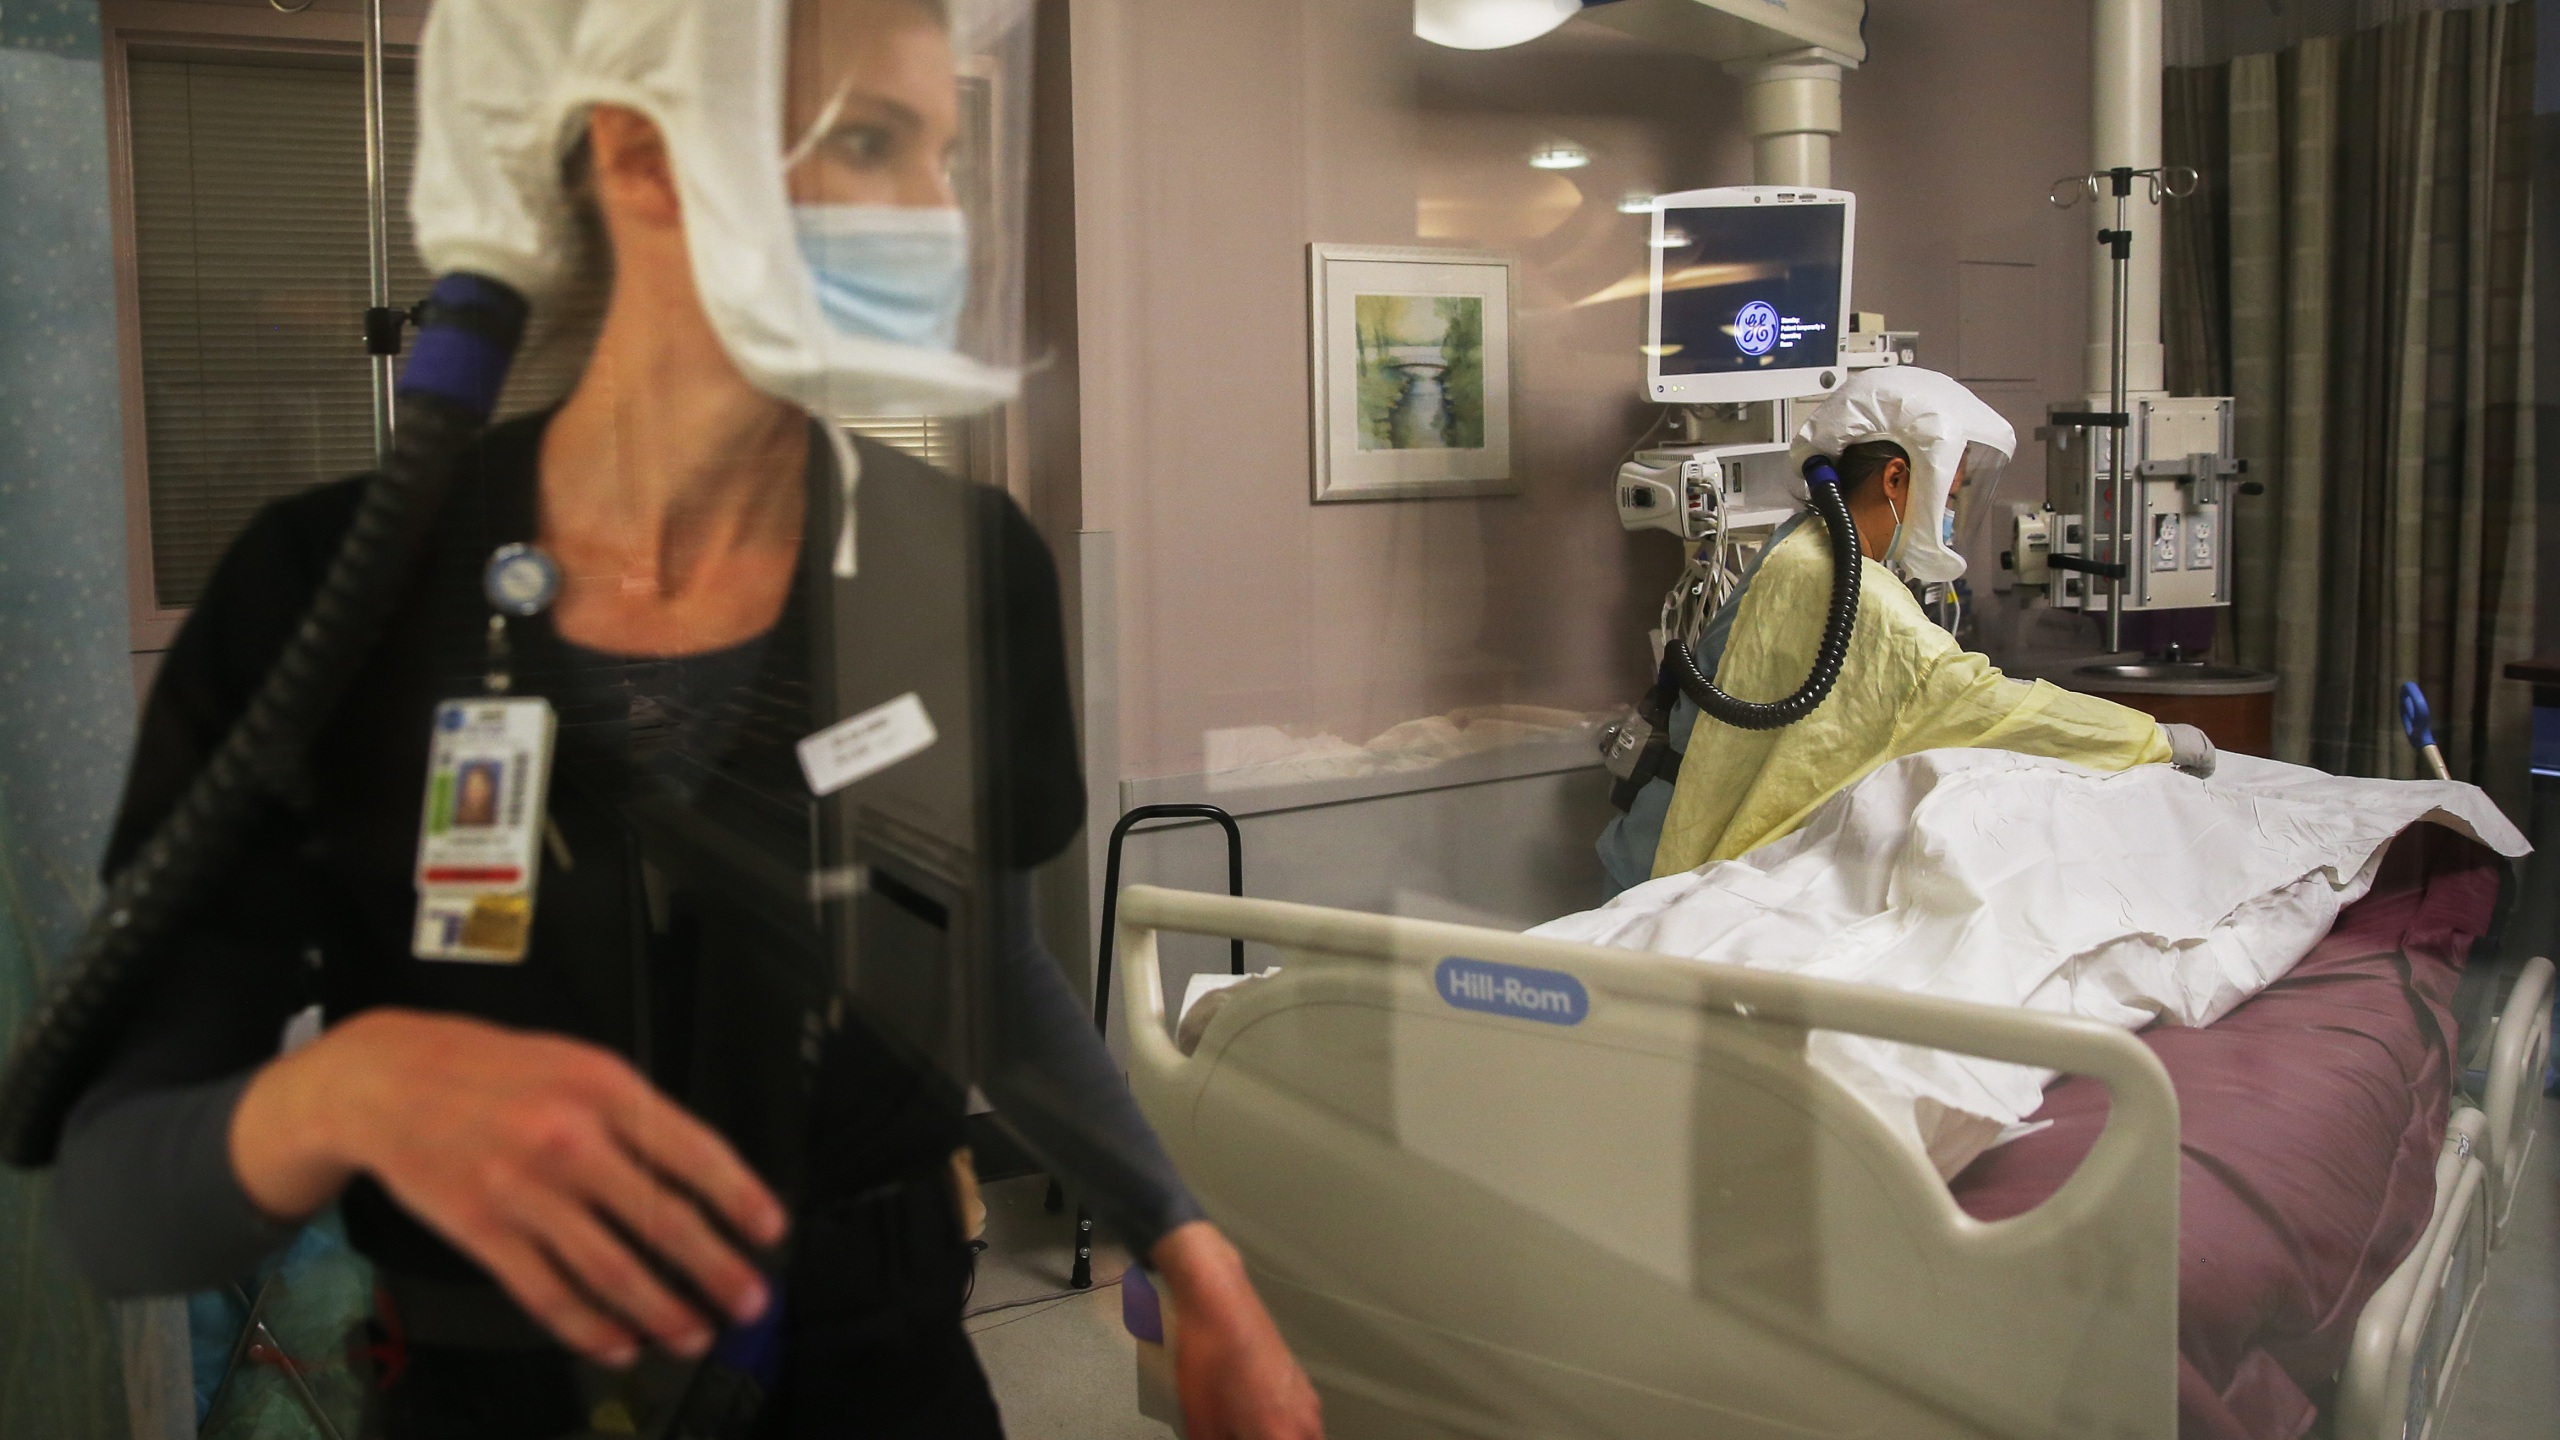 Registered nurses Lindsey Ryan (L) and Carrie Tang provide post-mortem care to a deceased COVID-19 patient in the Intensive Care Unit at Sharp Grossmont Hospital on December 14, 2020 in La Mesa, California. (Photo by Mario Tama/Getty Images)